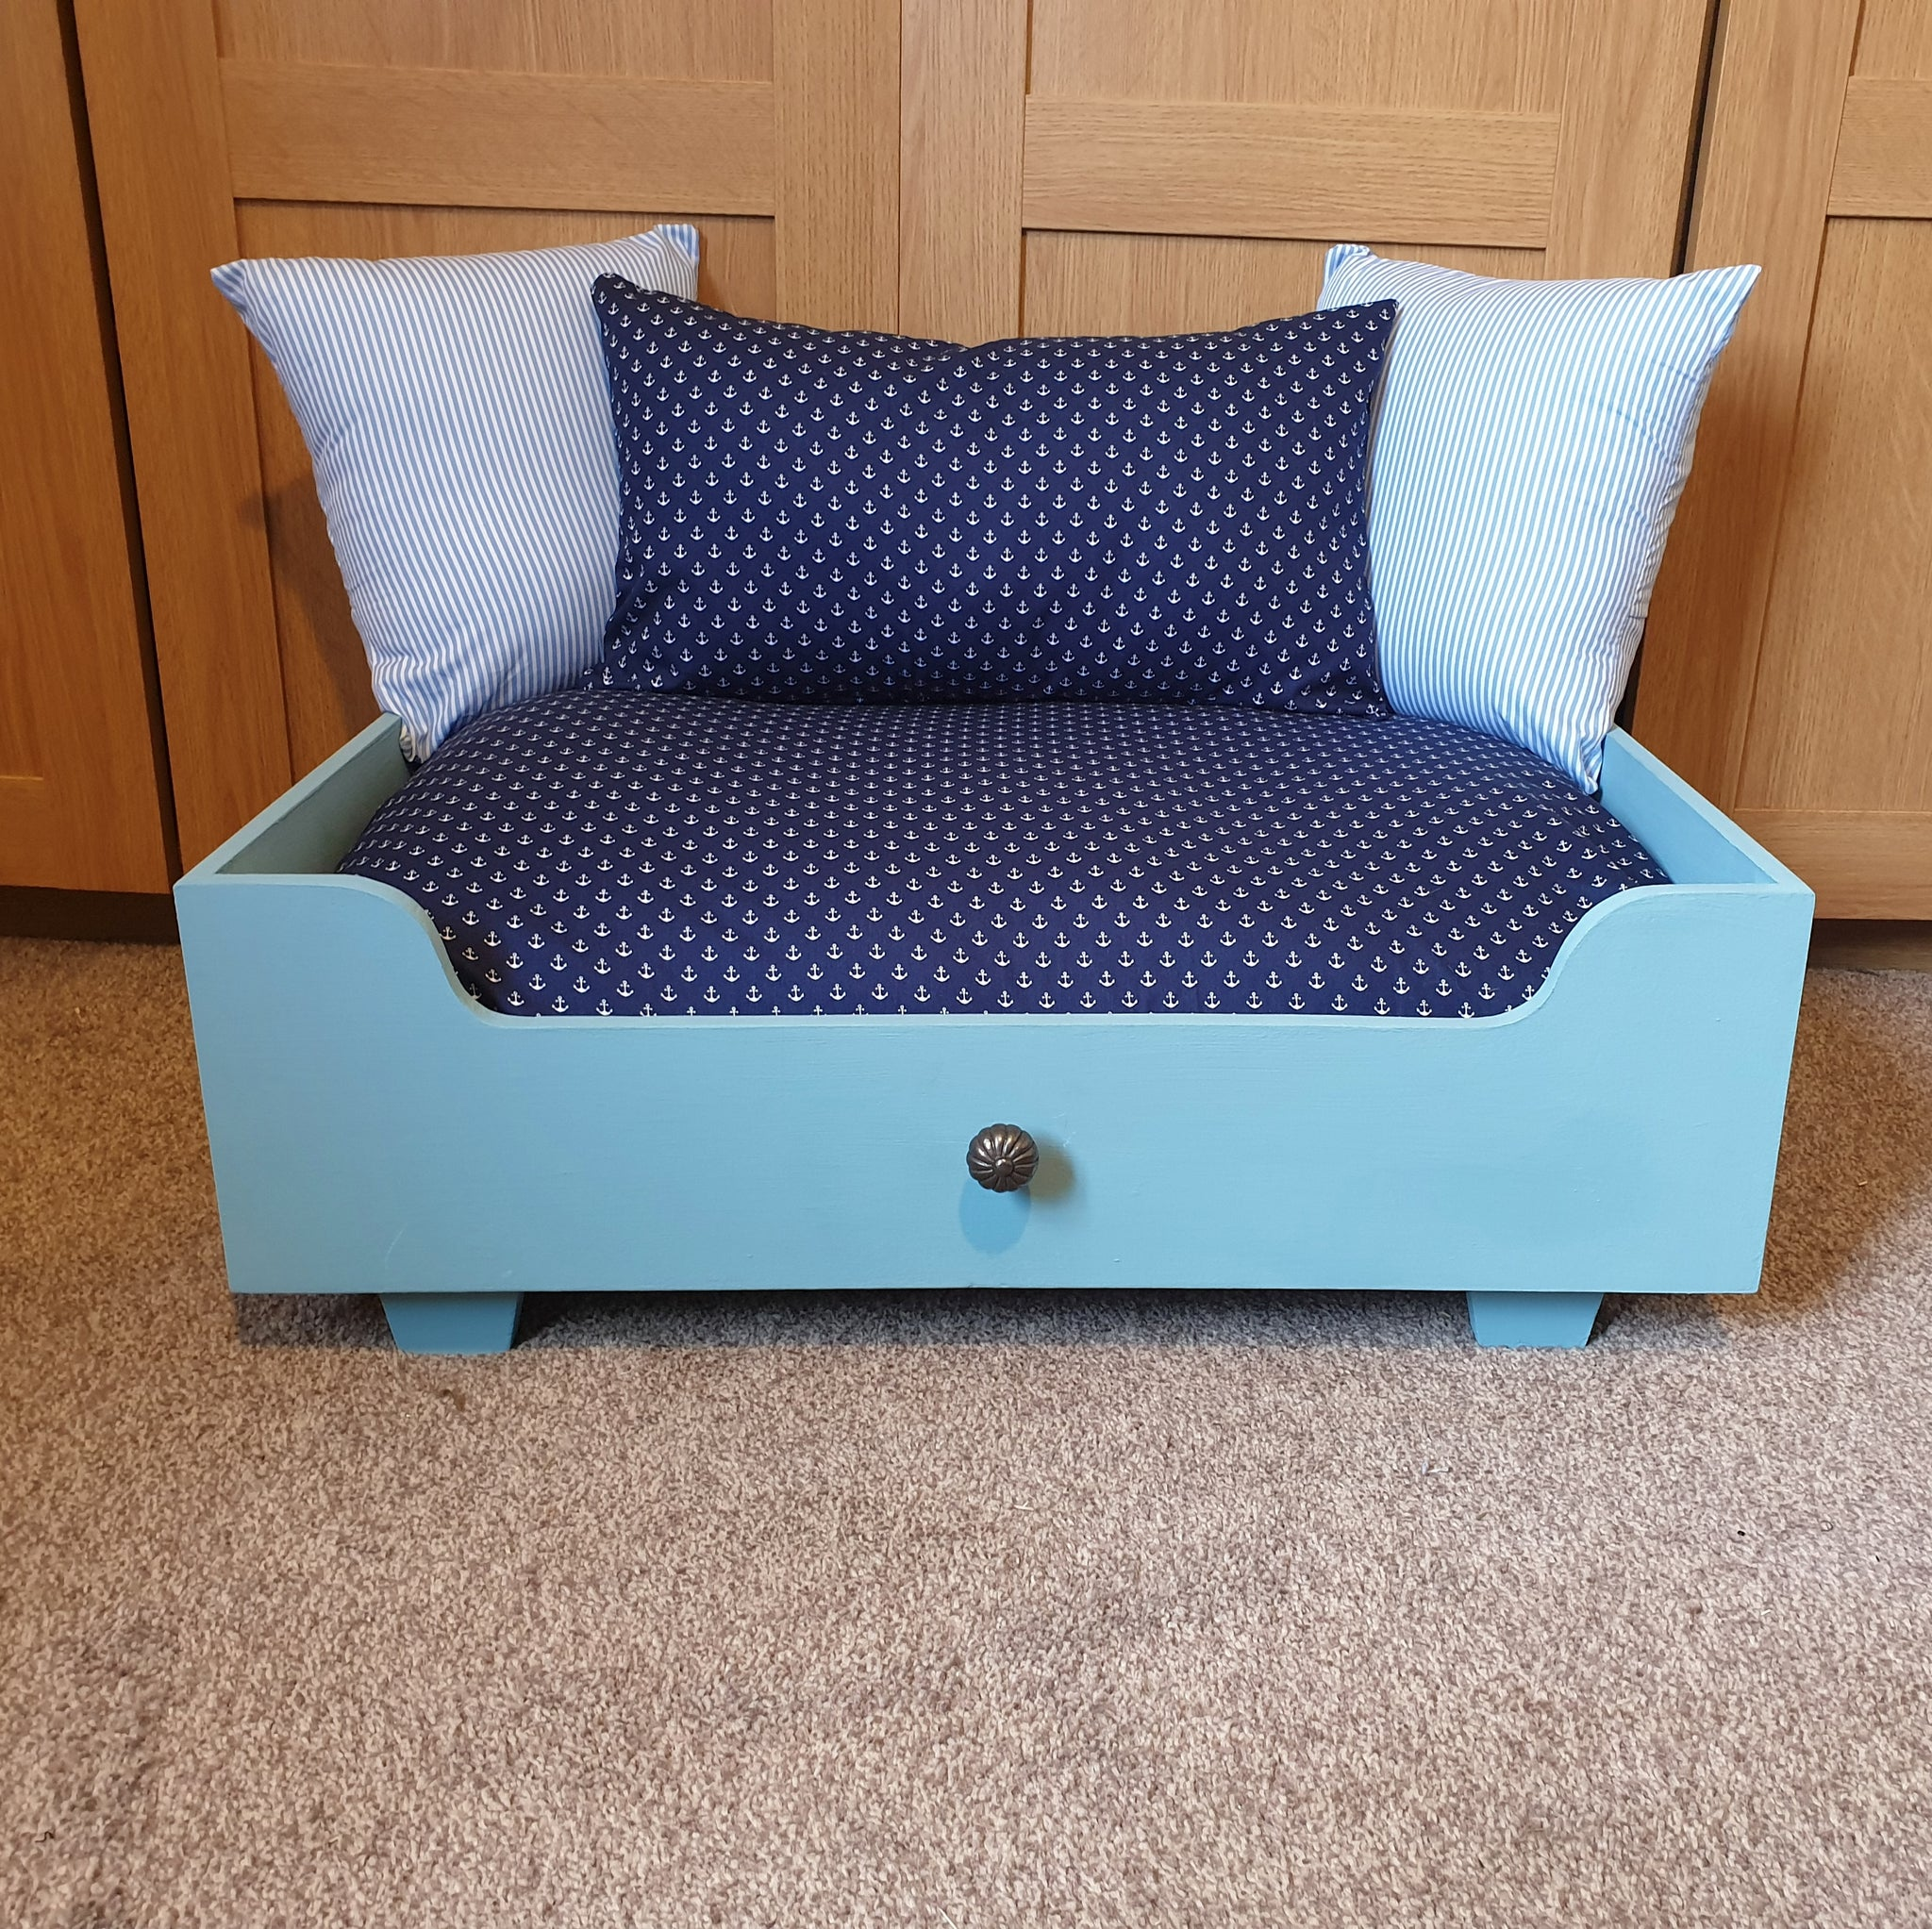 Handmade Dog Bed - Belgrave blue frame with NAVY ANCHOR MATTRESS AND CENTRE PILLOW + BLUE STRIPED PILLOWS